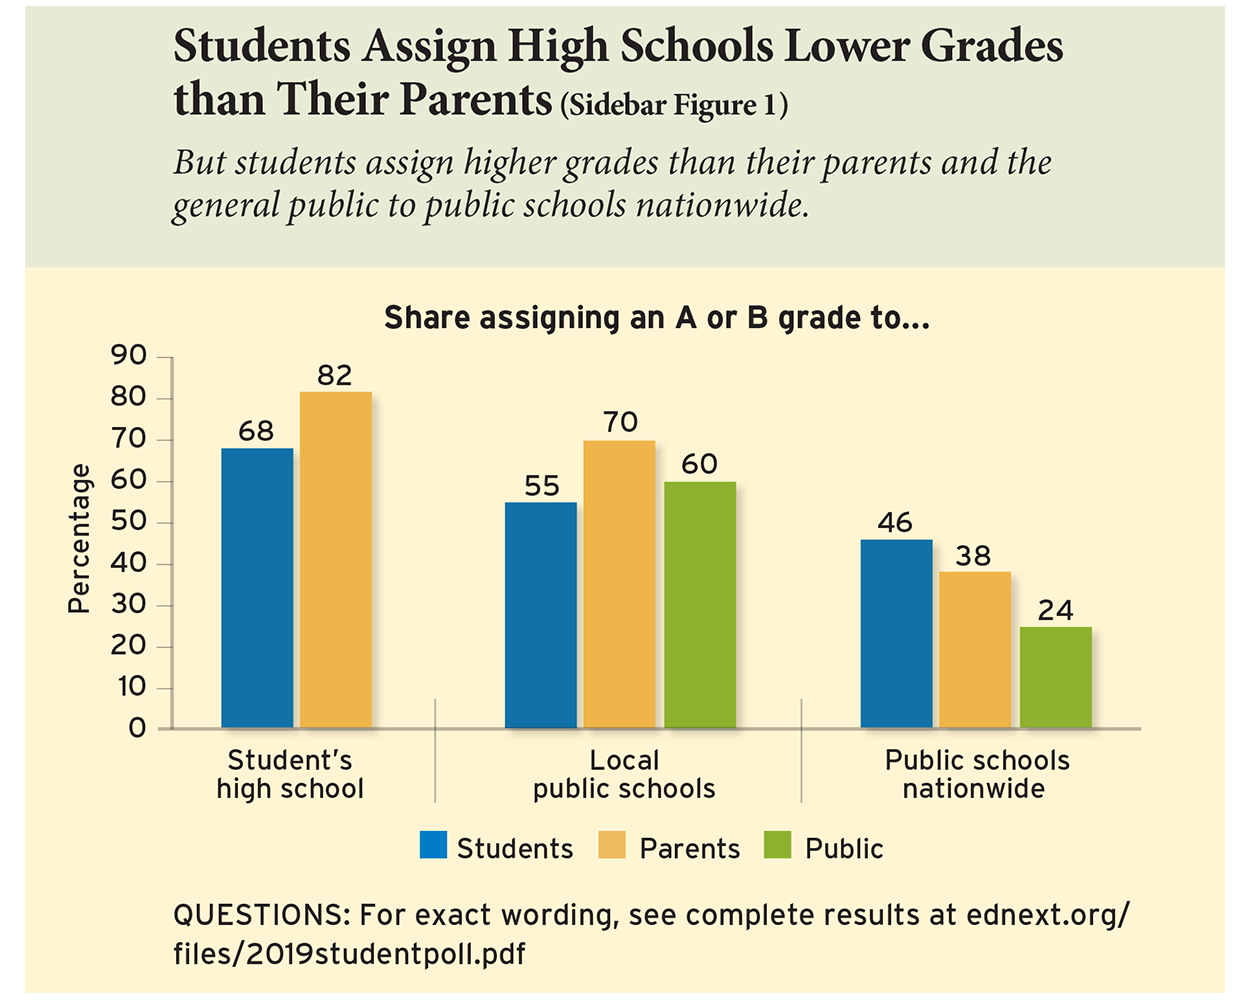 Students Assign High Schools Lower Grades than Their Parents (Sidebar Figure 1)